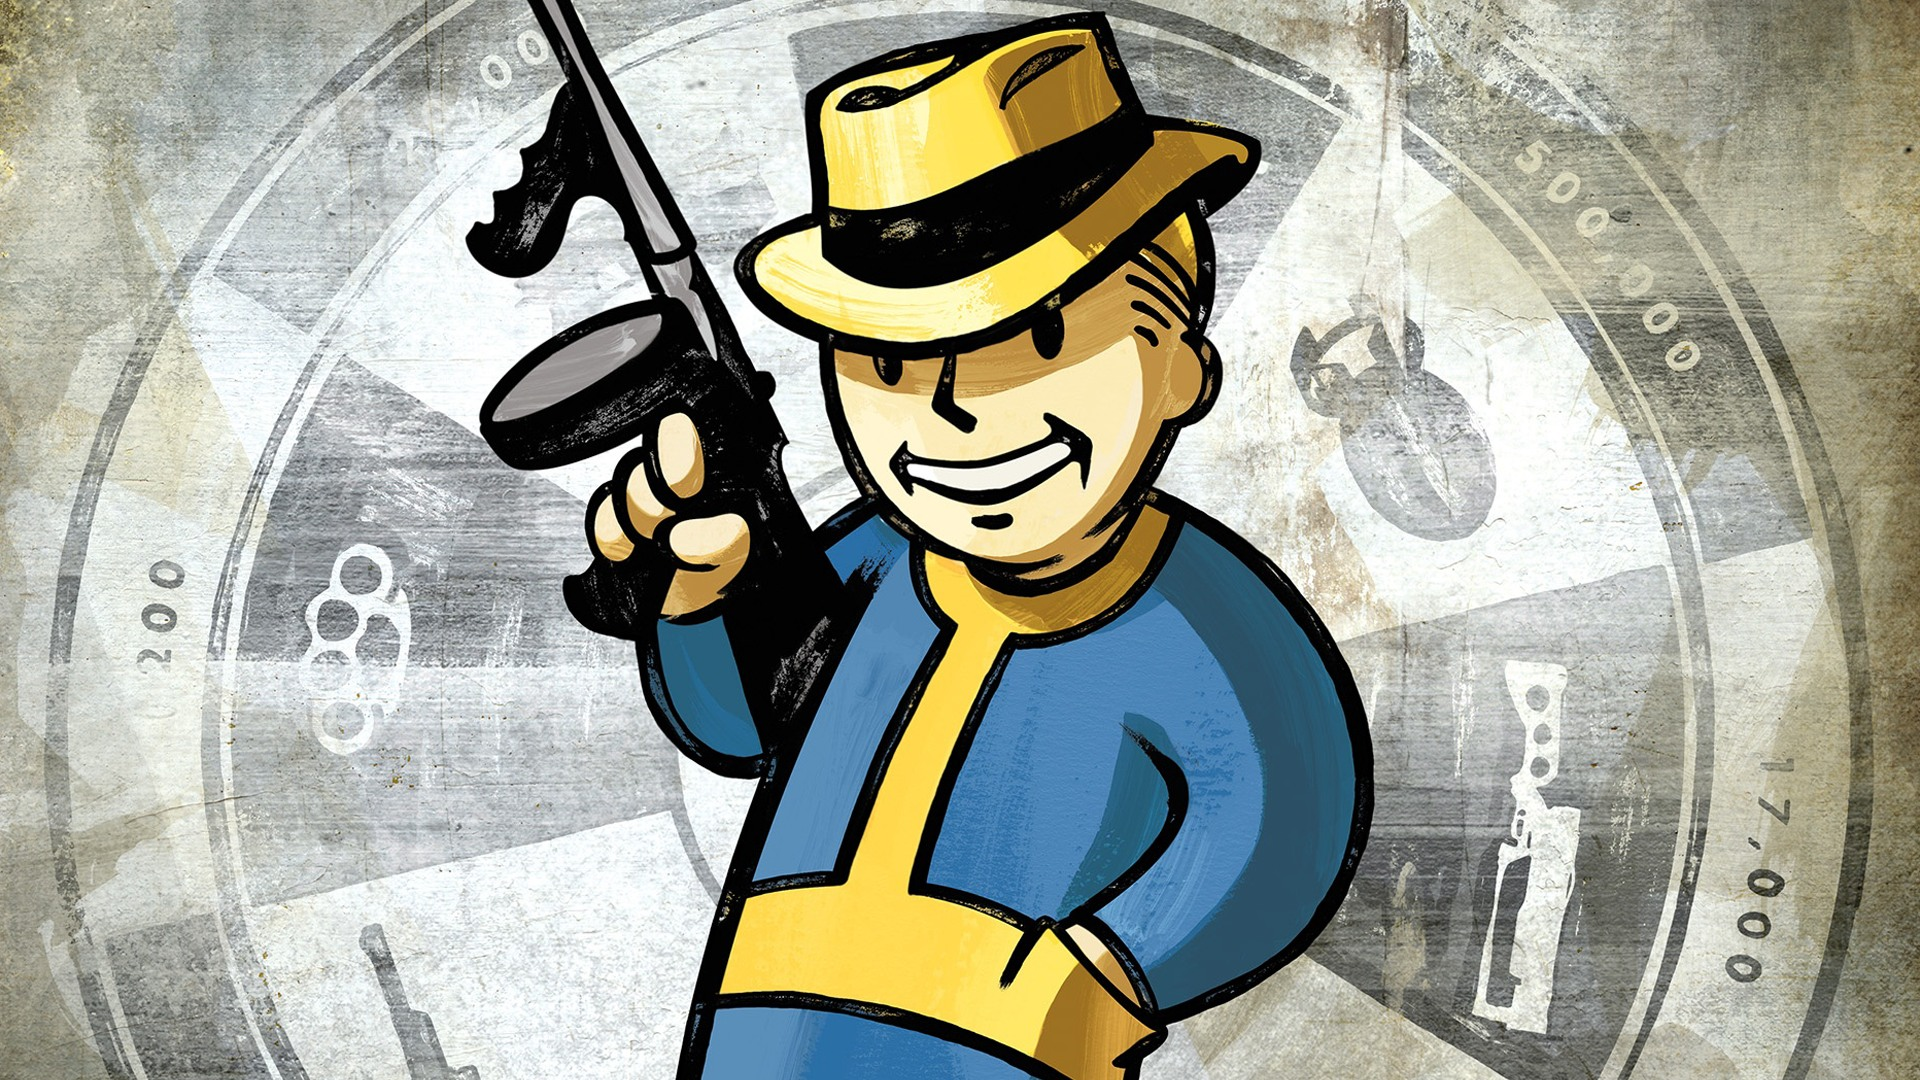 6 hd fallout vault boy wallpapers hdwallsourcecom